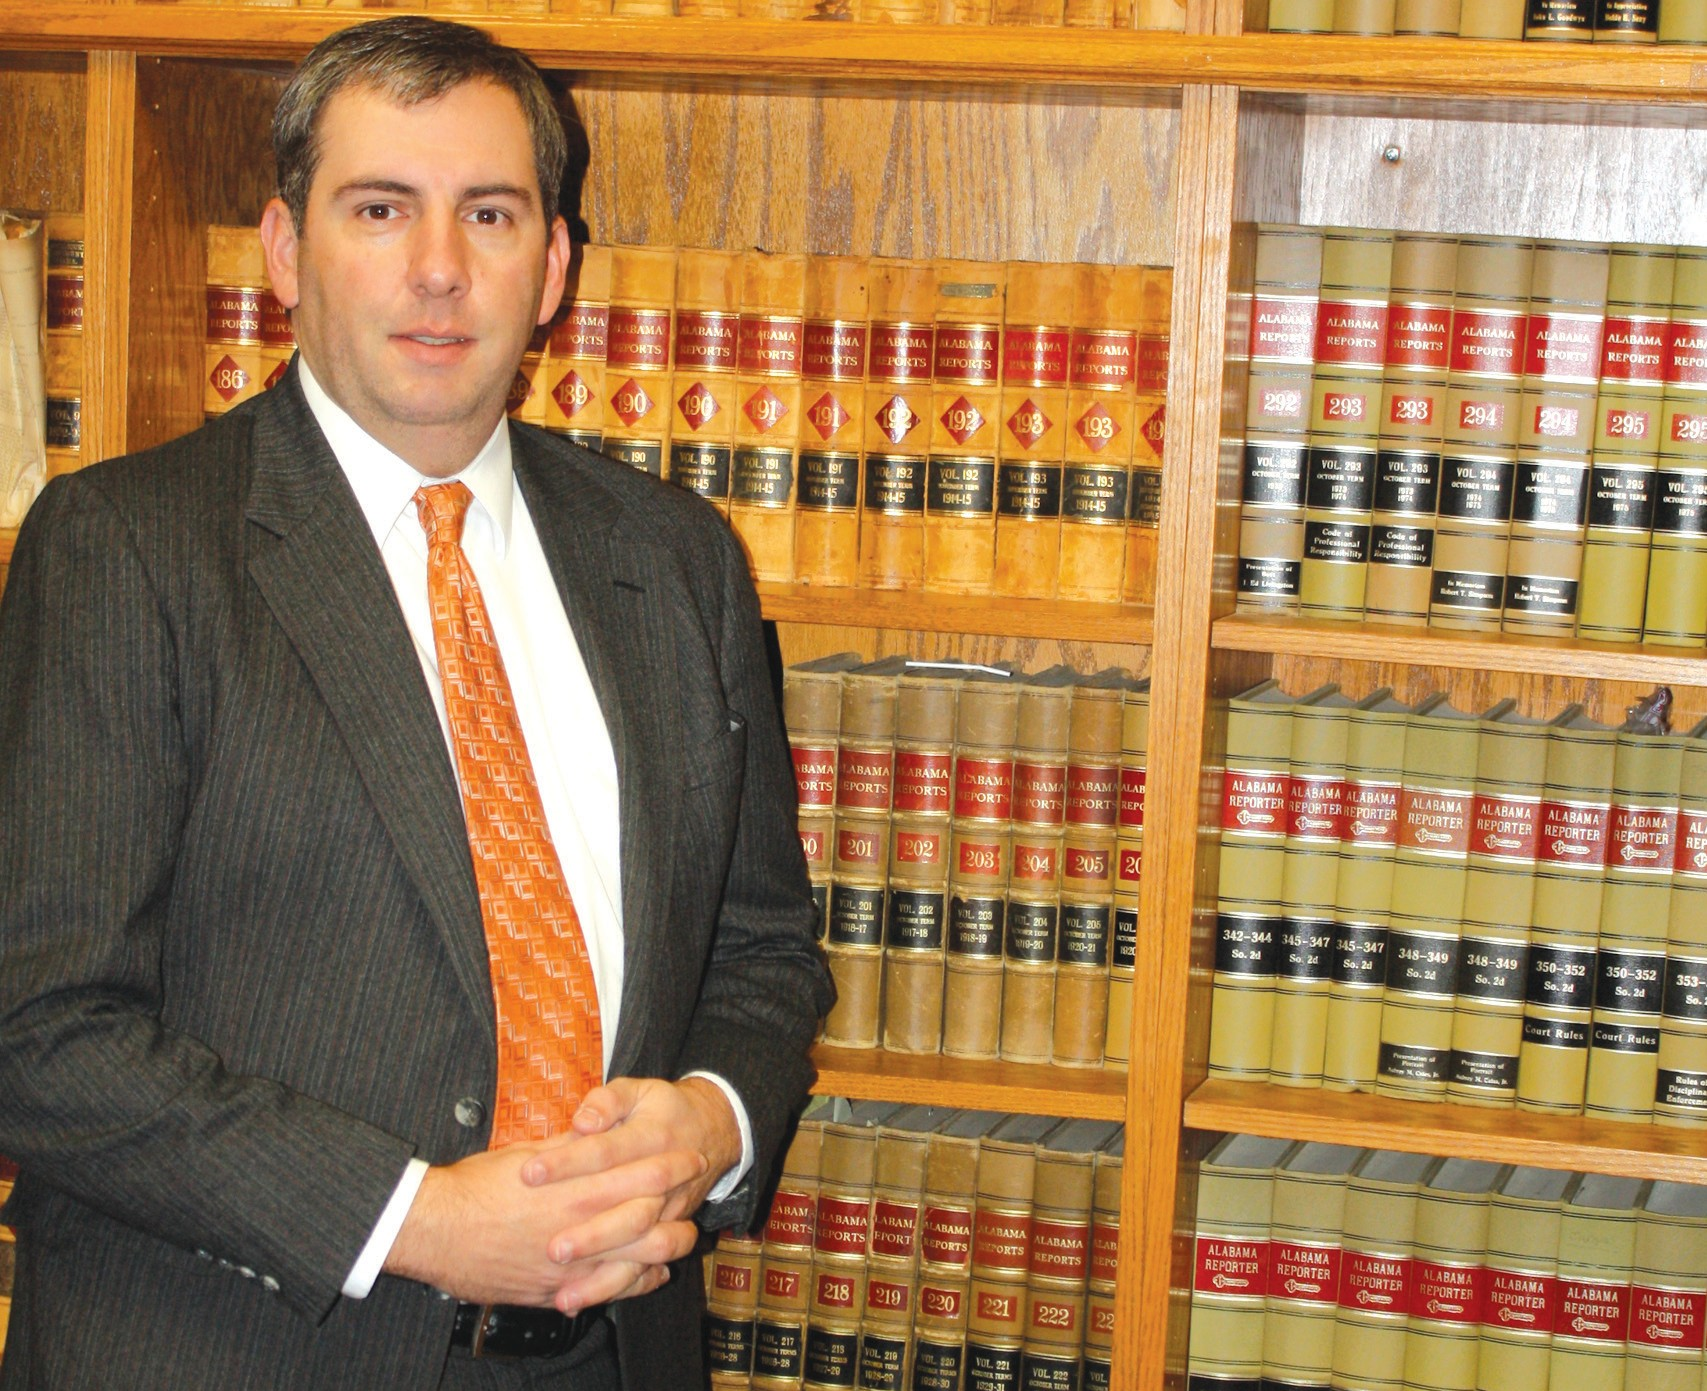 Local attorney Bill Burns is president of the Blount County Bar Association, which will be hosting a free legal clinic in January.